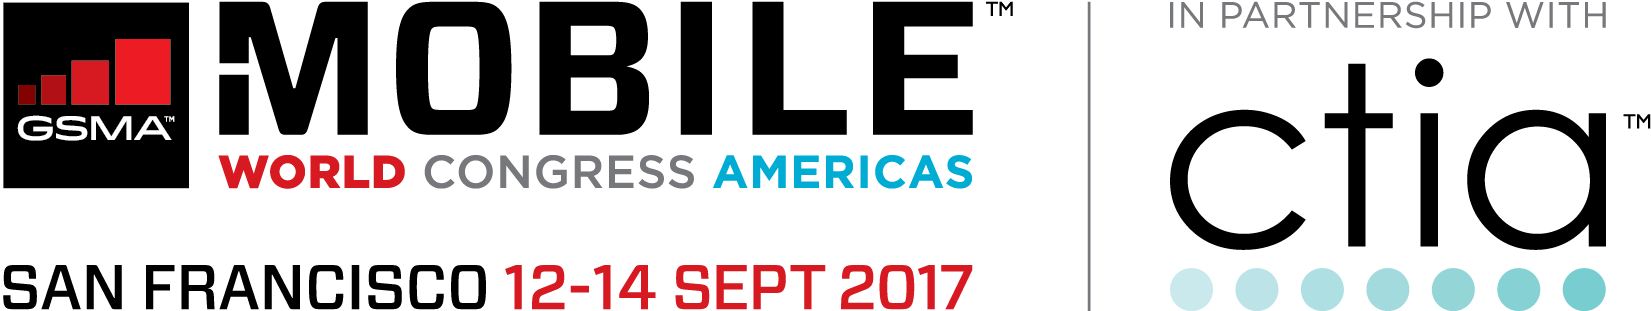 GSMA Mobile World Congress Americas 2017 in partnership with CTIA